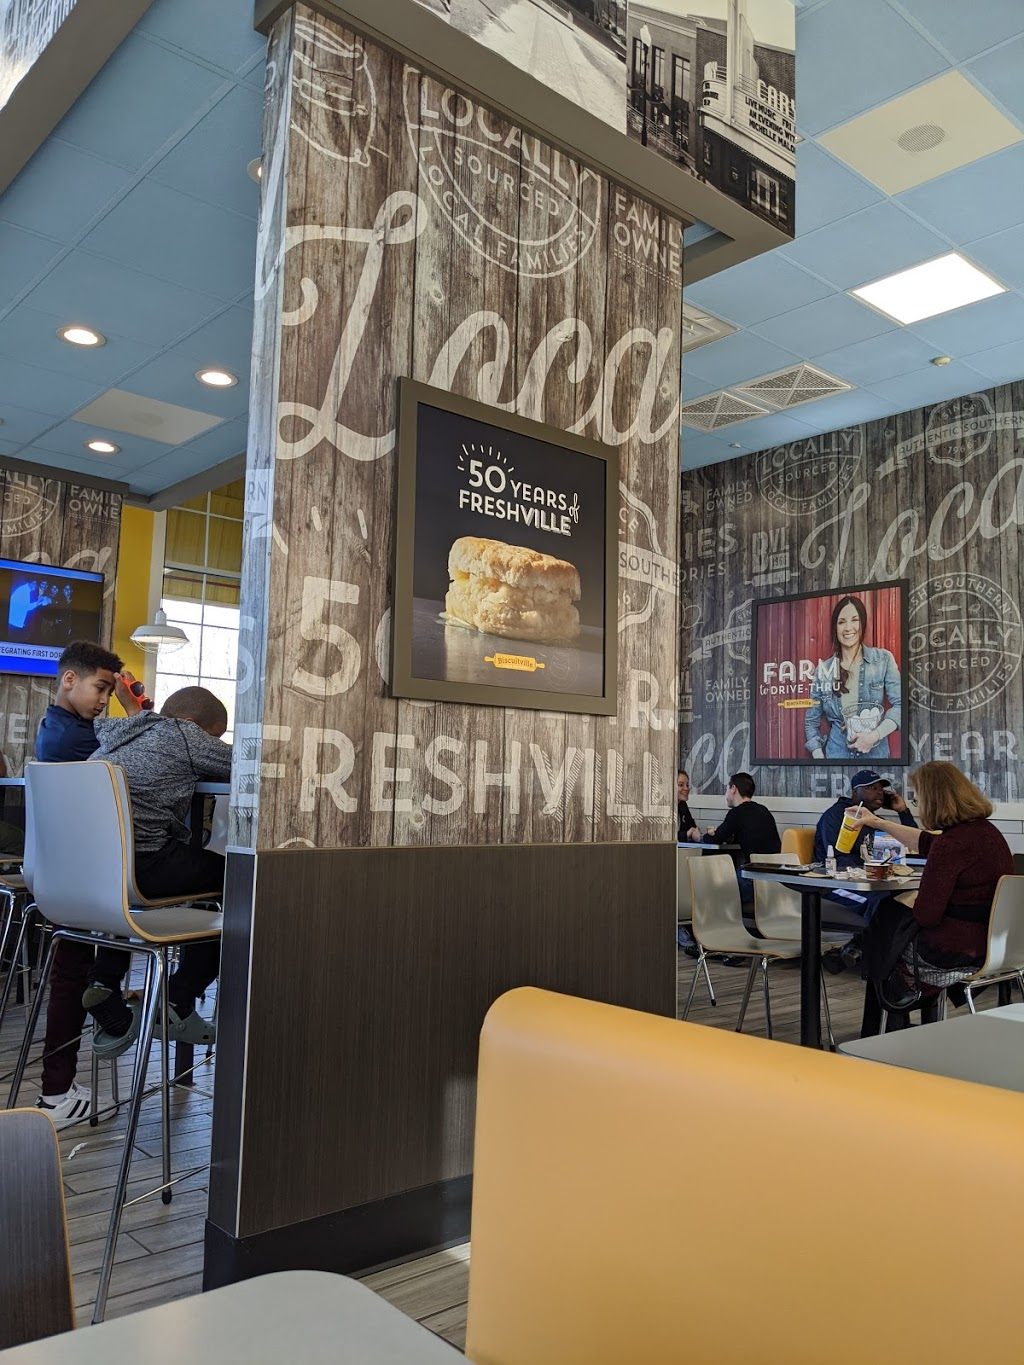 Biscuitville - cafe  | Photo 6 of 10 | Address: 2820 NC-55, Cary, NC 27519, USA | Phone: (919) 362-8034